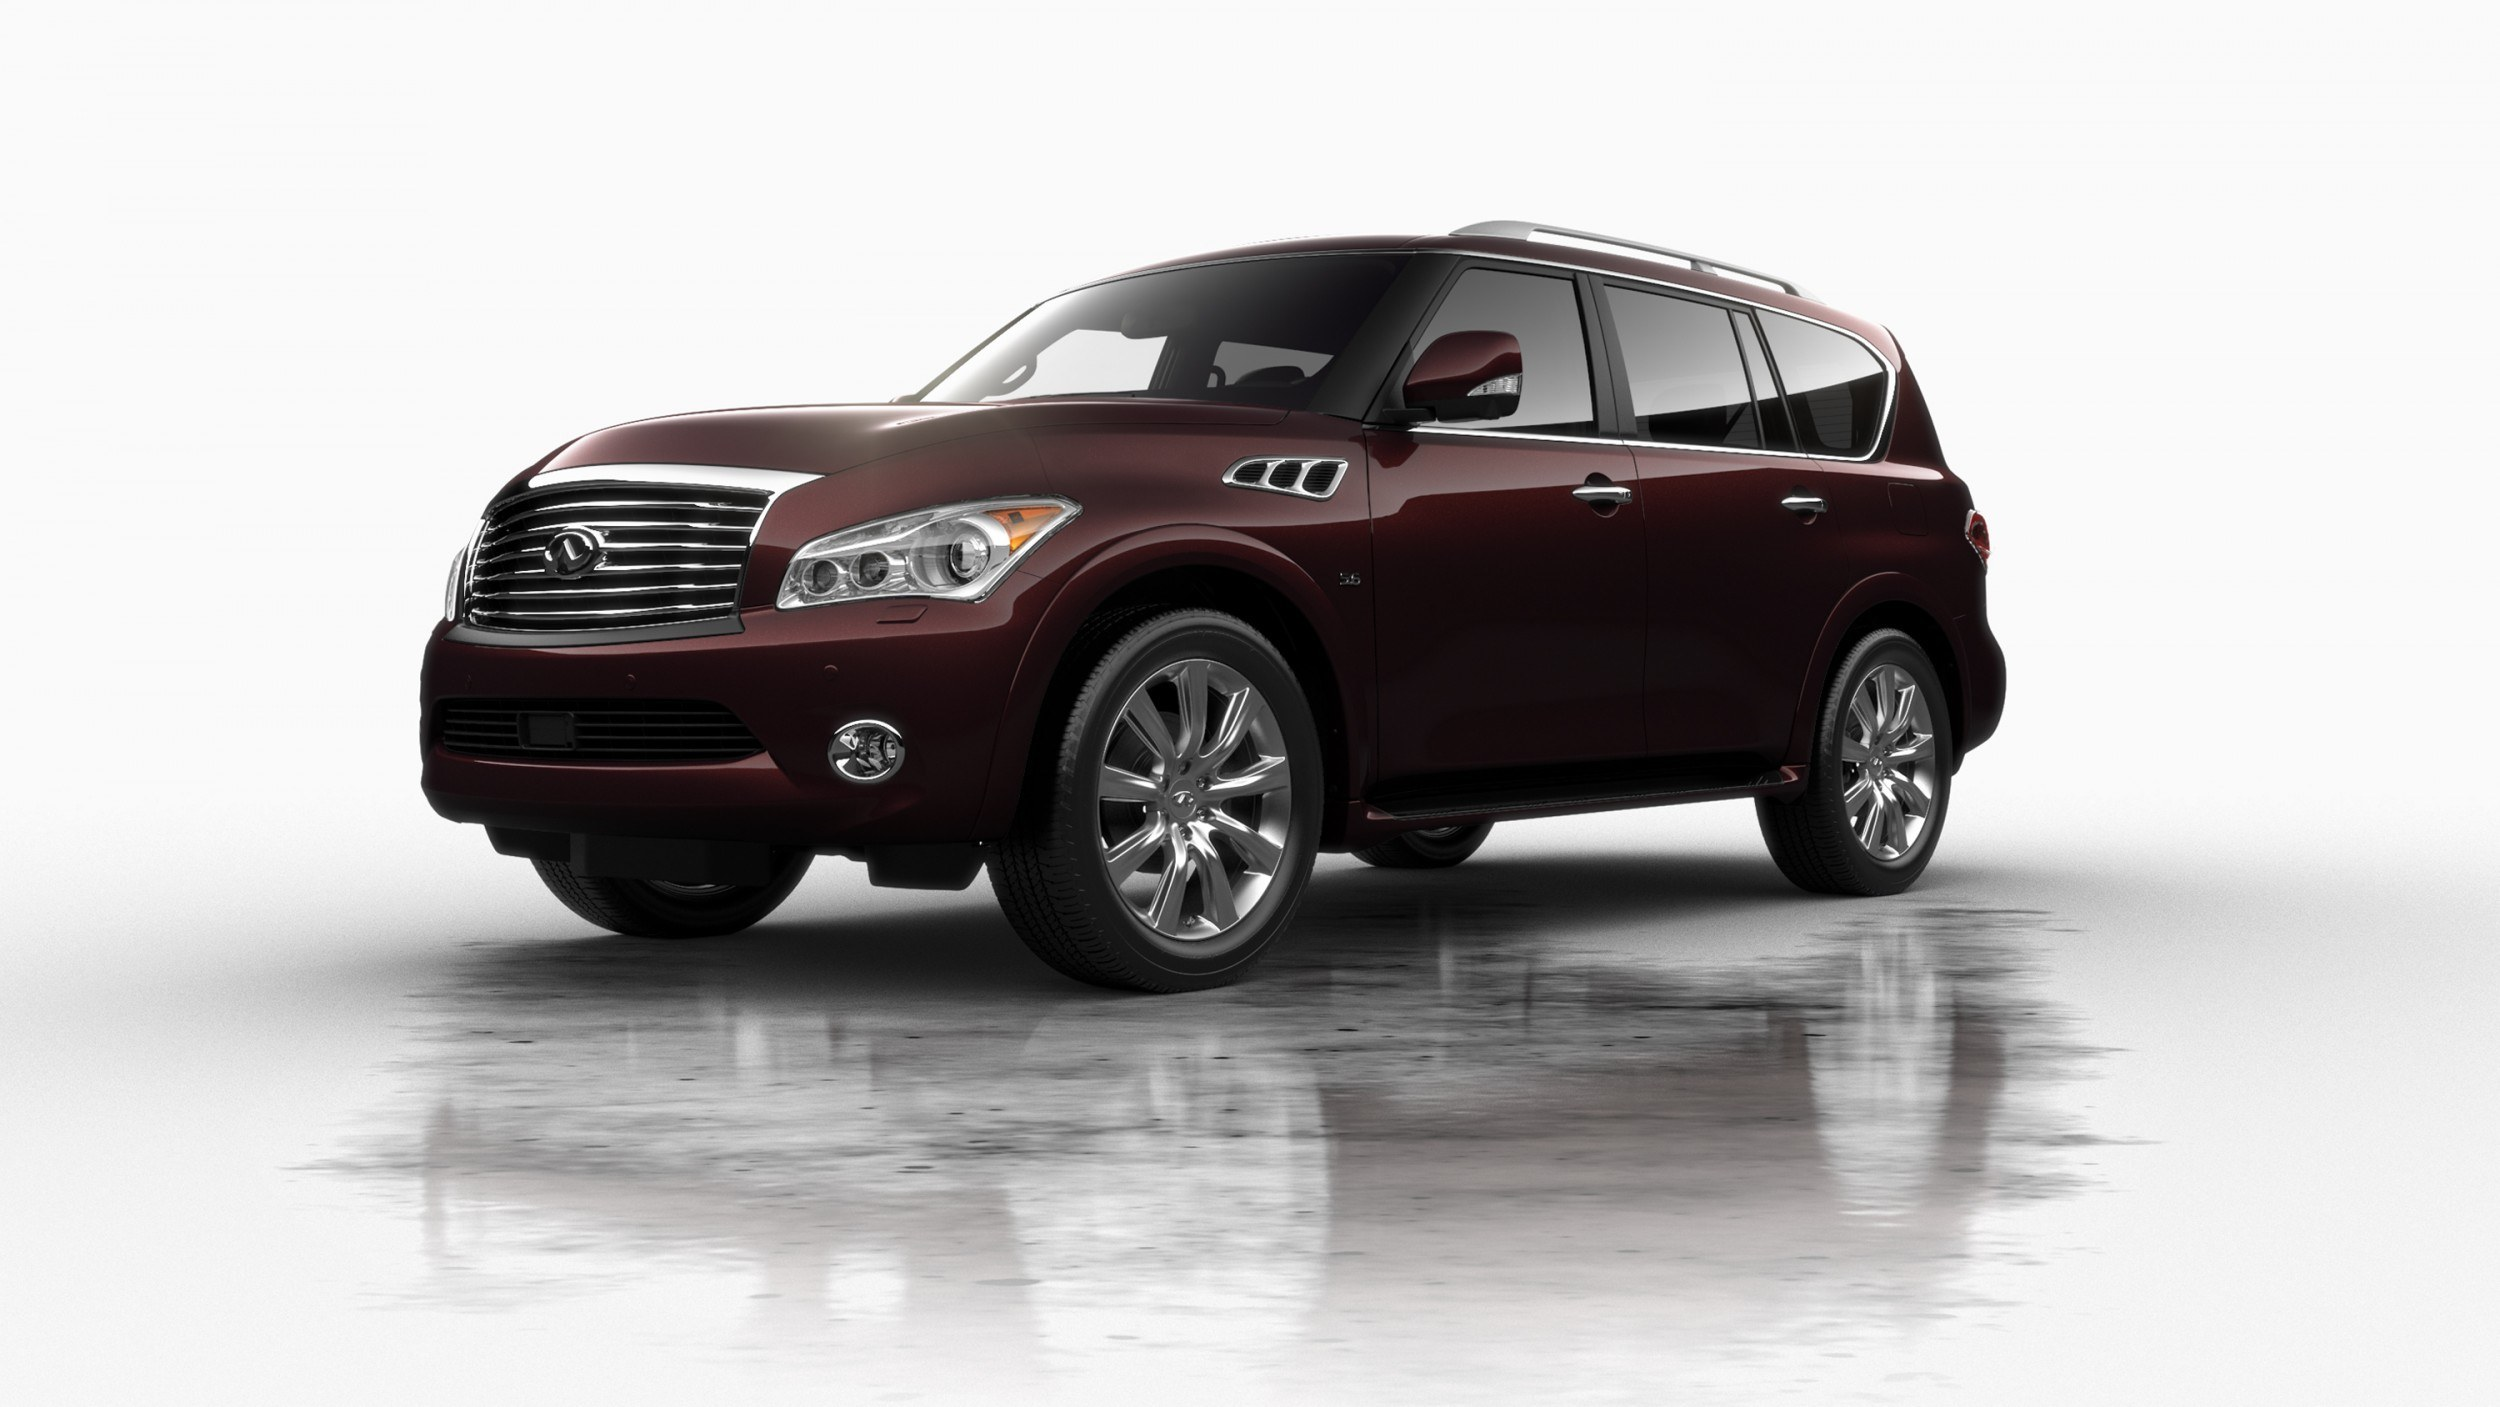 car revs 2014 infiniti qx80 buyers guide pricing colors and specs 34. Black Bedroom Furniture Sets. Home Design Ideas